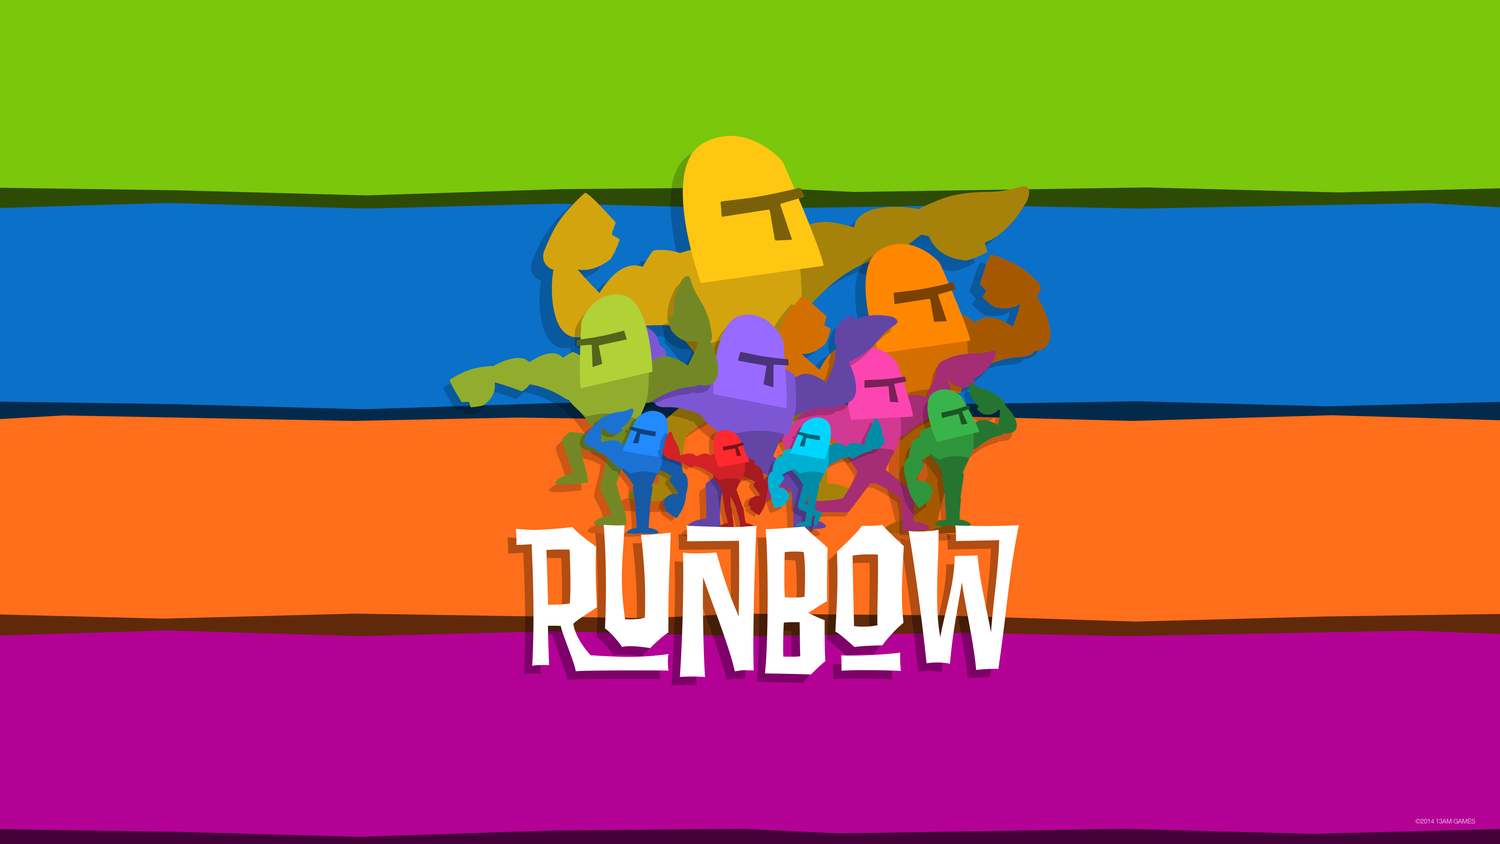 [Act.] Runbow y Windscape se lucen en estos gameplays